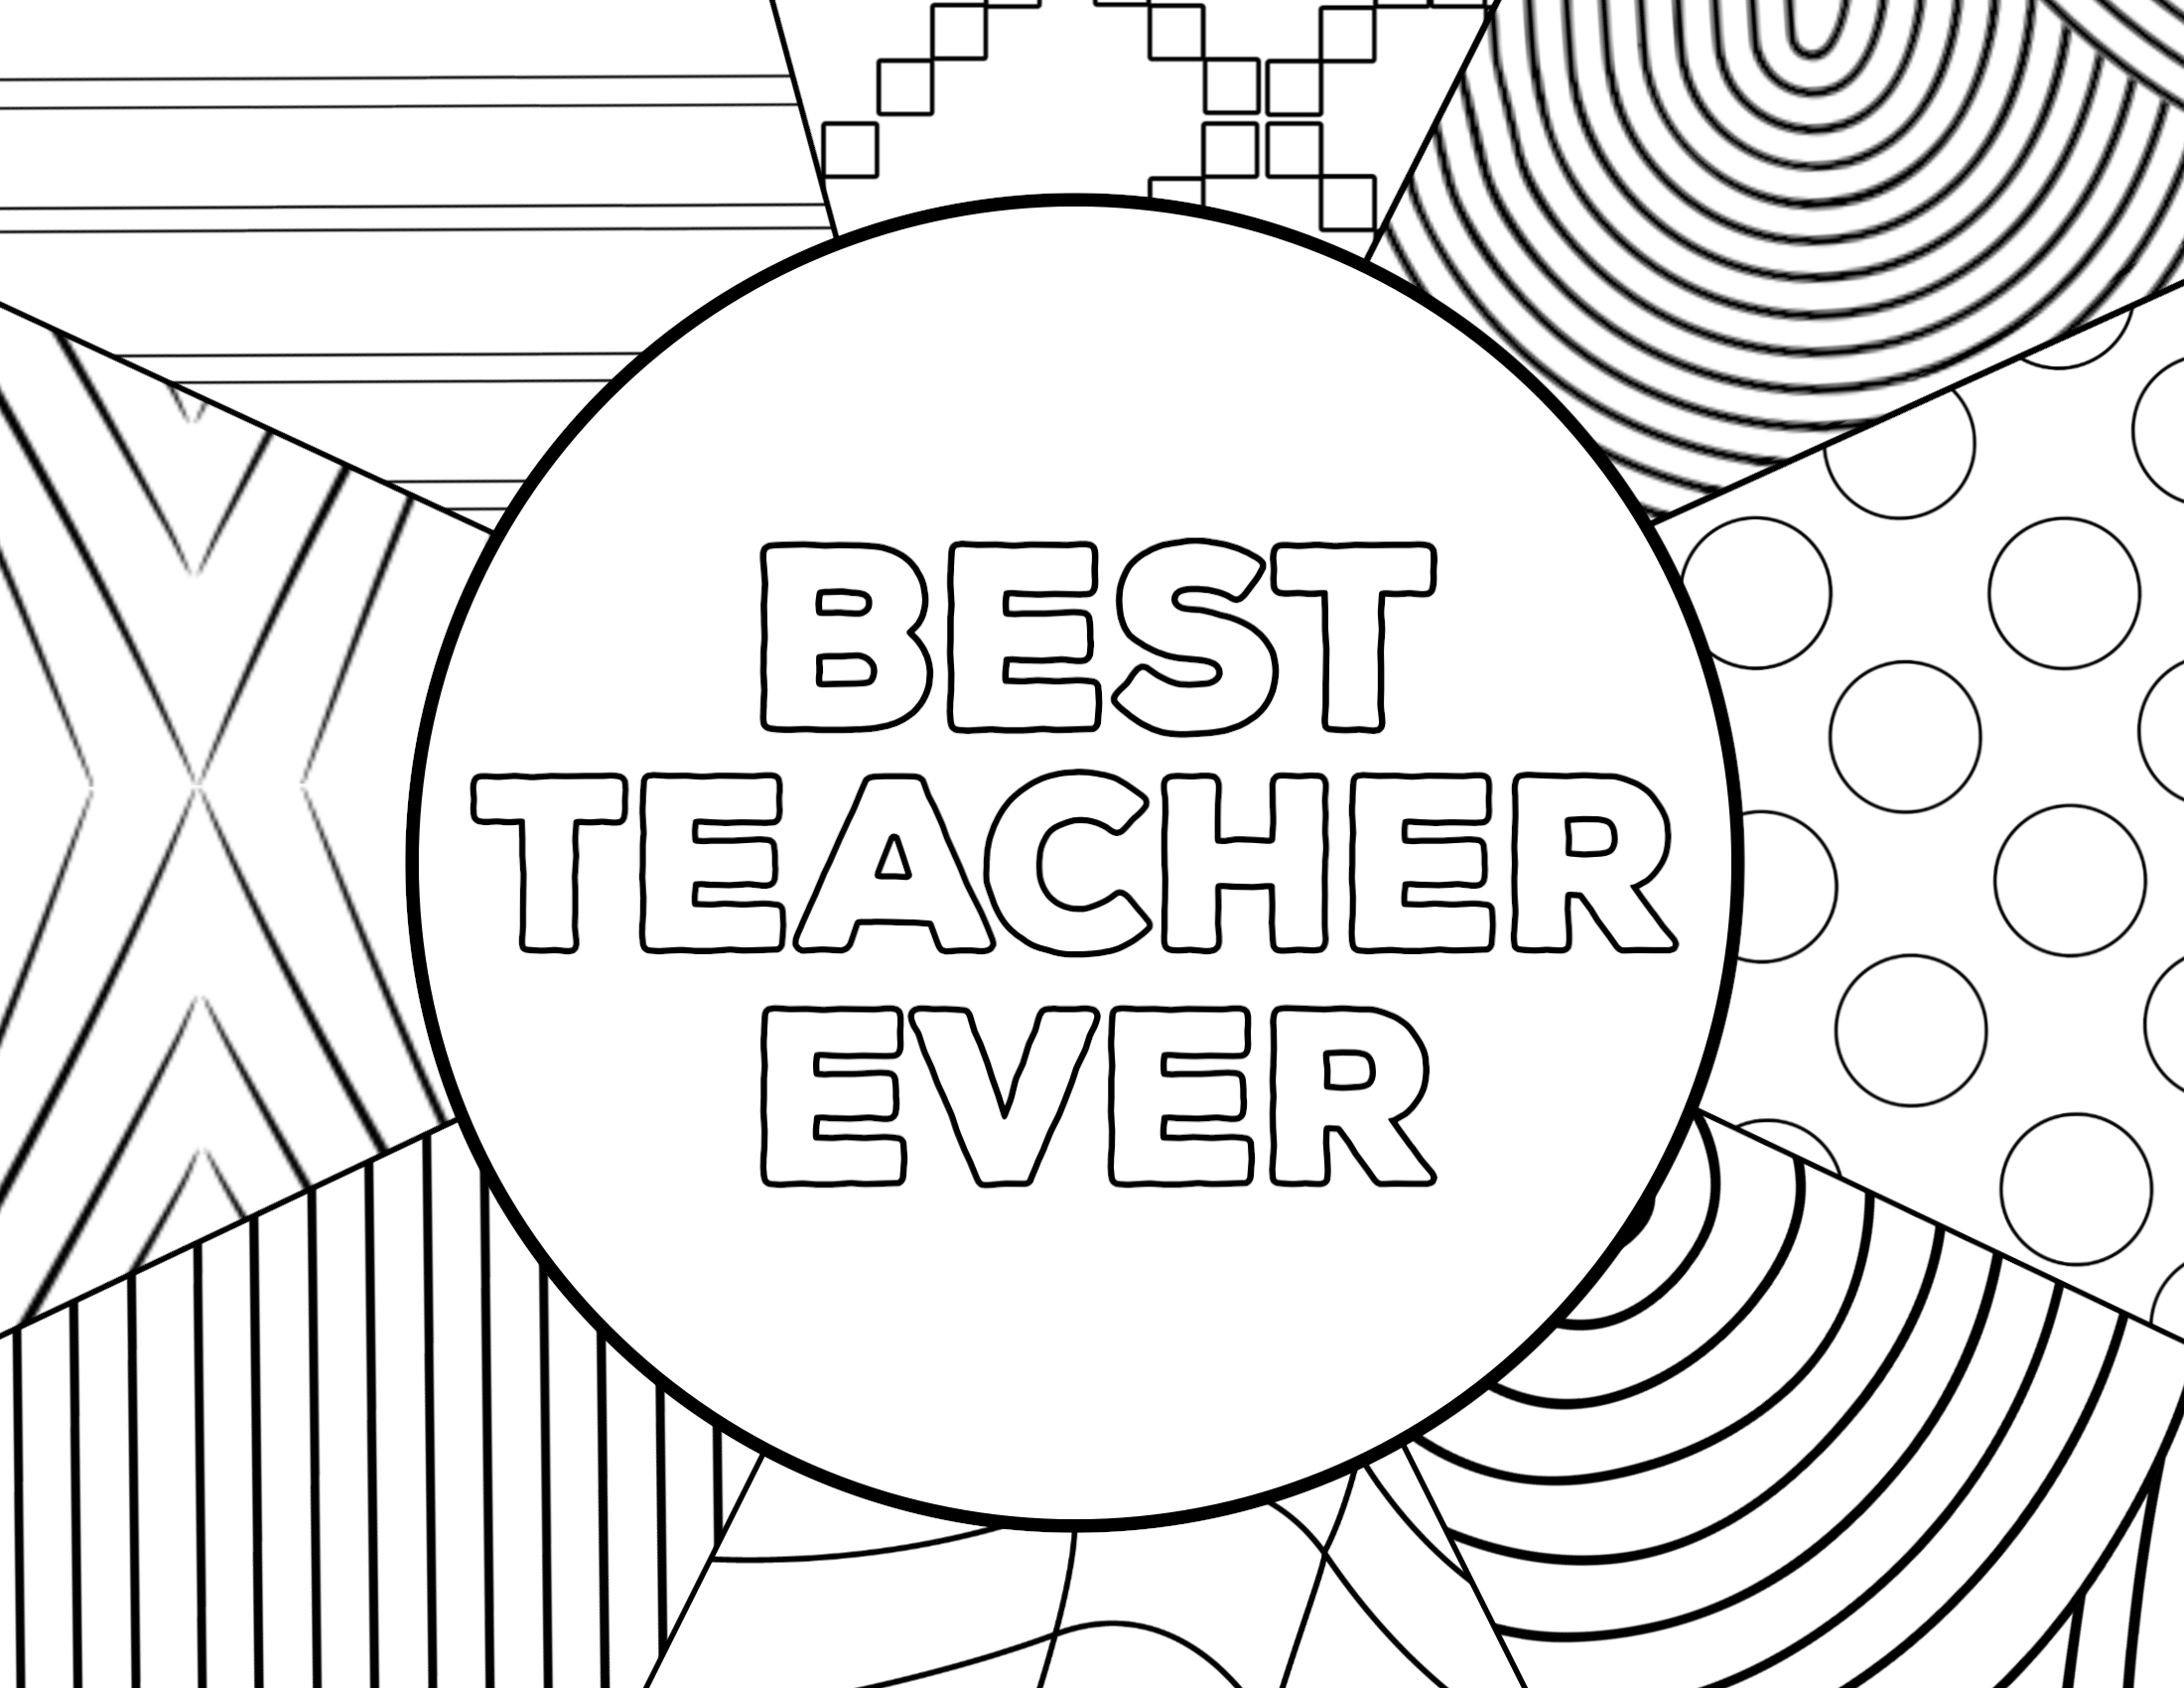 coloring printable thank you card for teacher happy veterans day coloring pages luxury teacher you printable for teacher thank card coloring